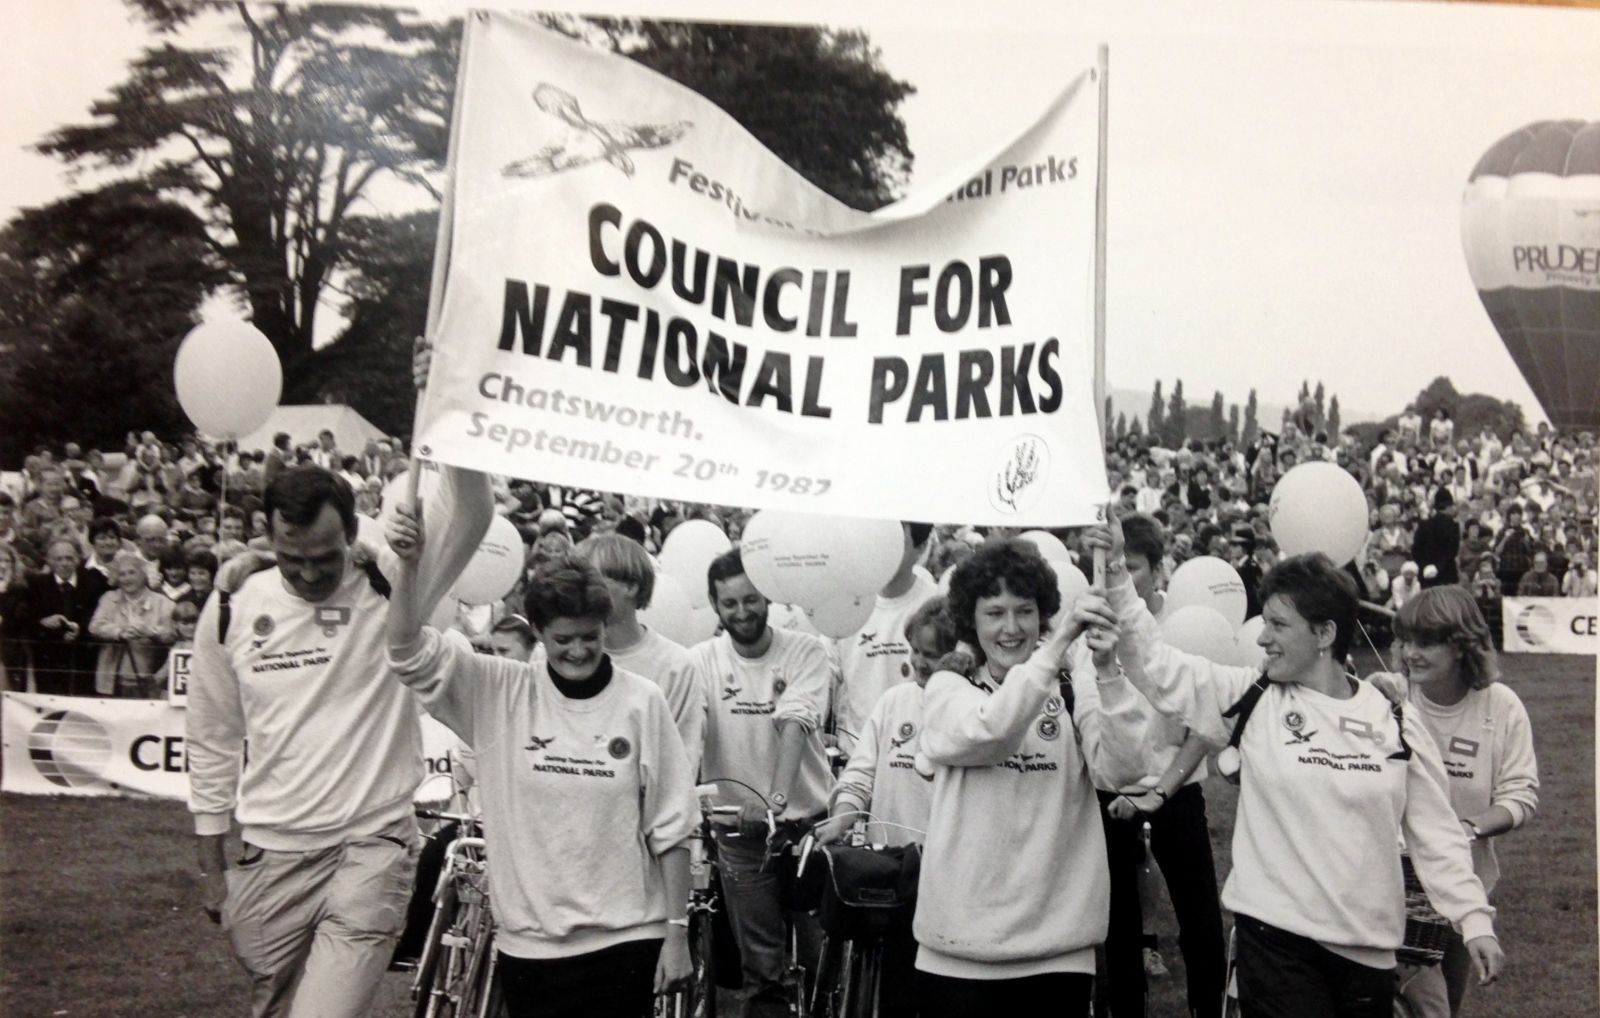 Council for National Parks festival